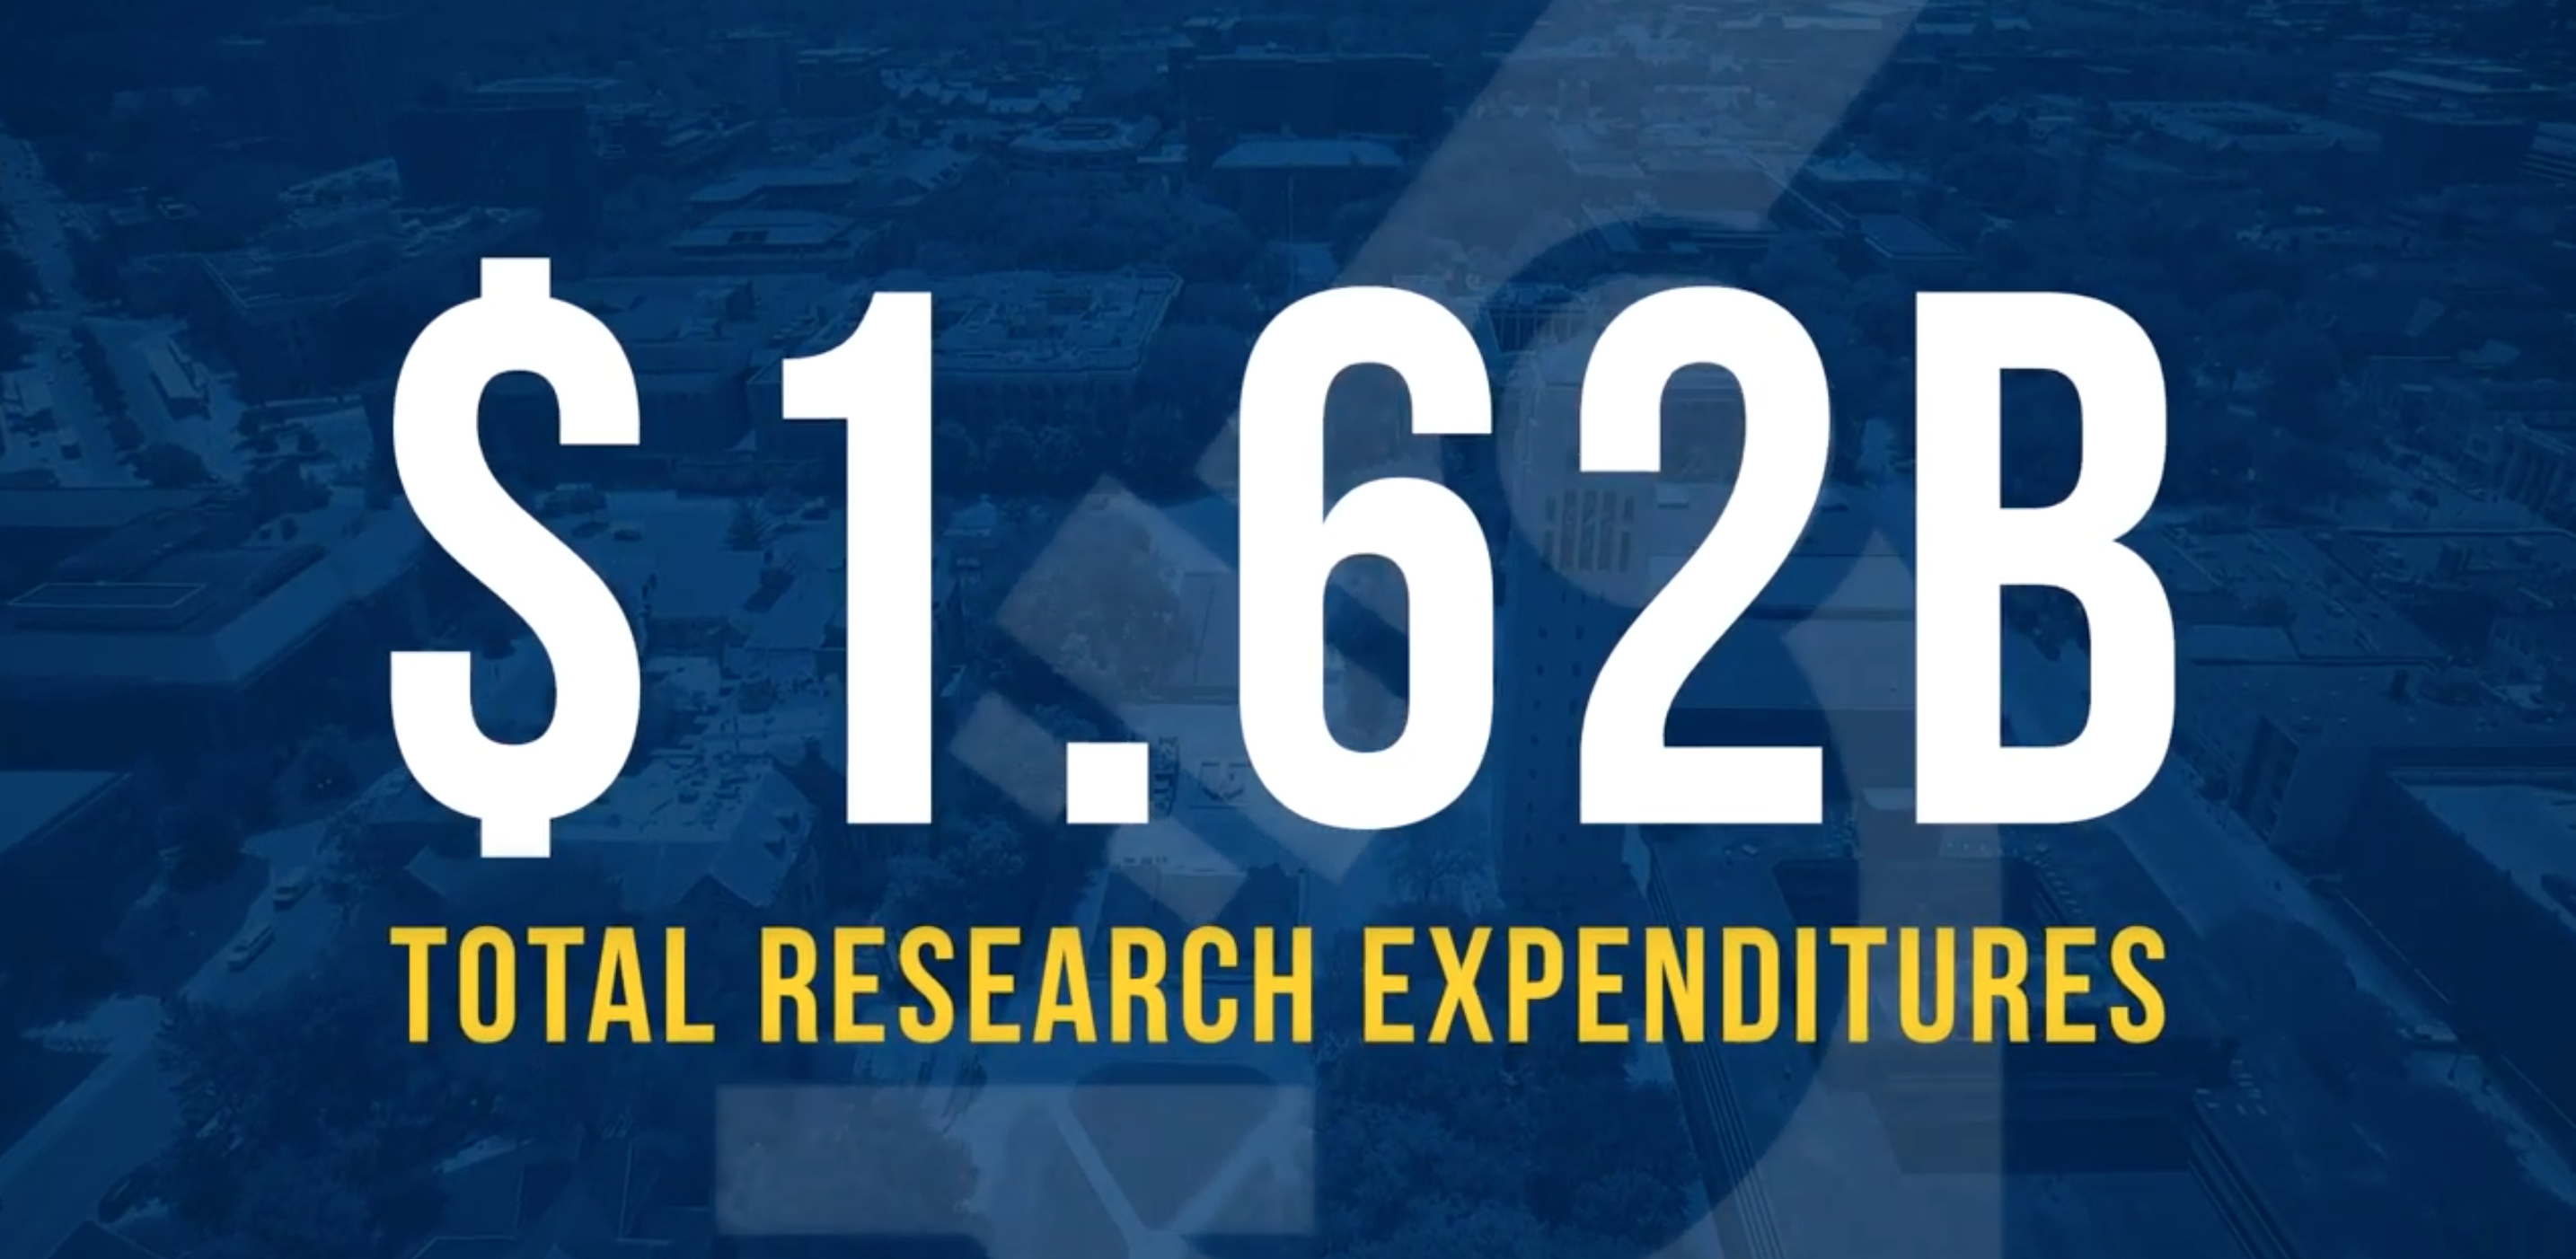 """""""$1.62B Total Research Expenditures"""" Screen Still from U-M Research"""